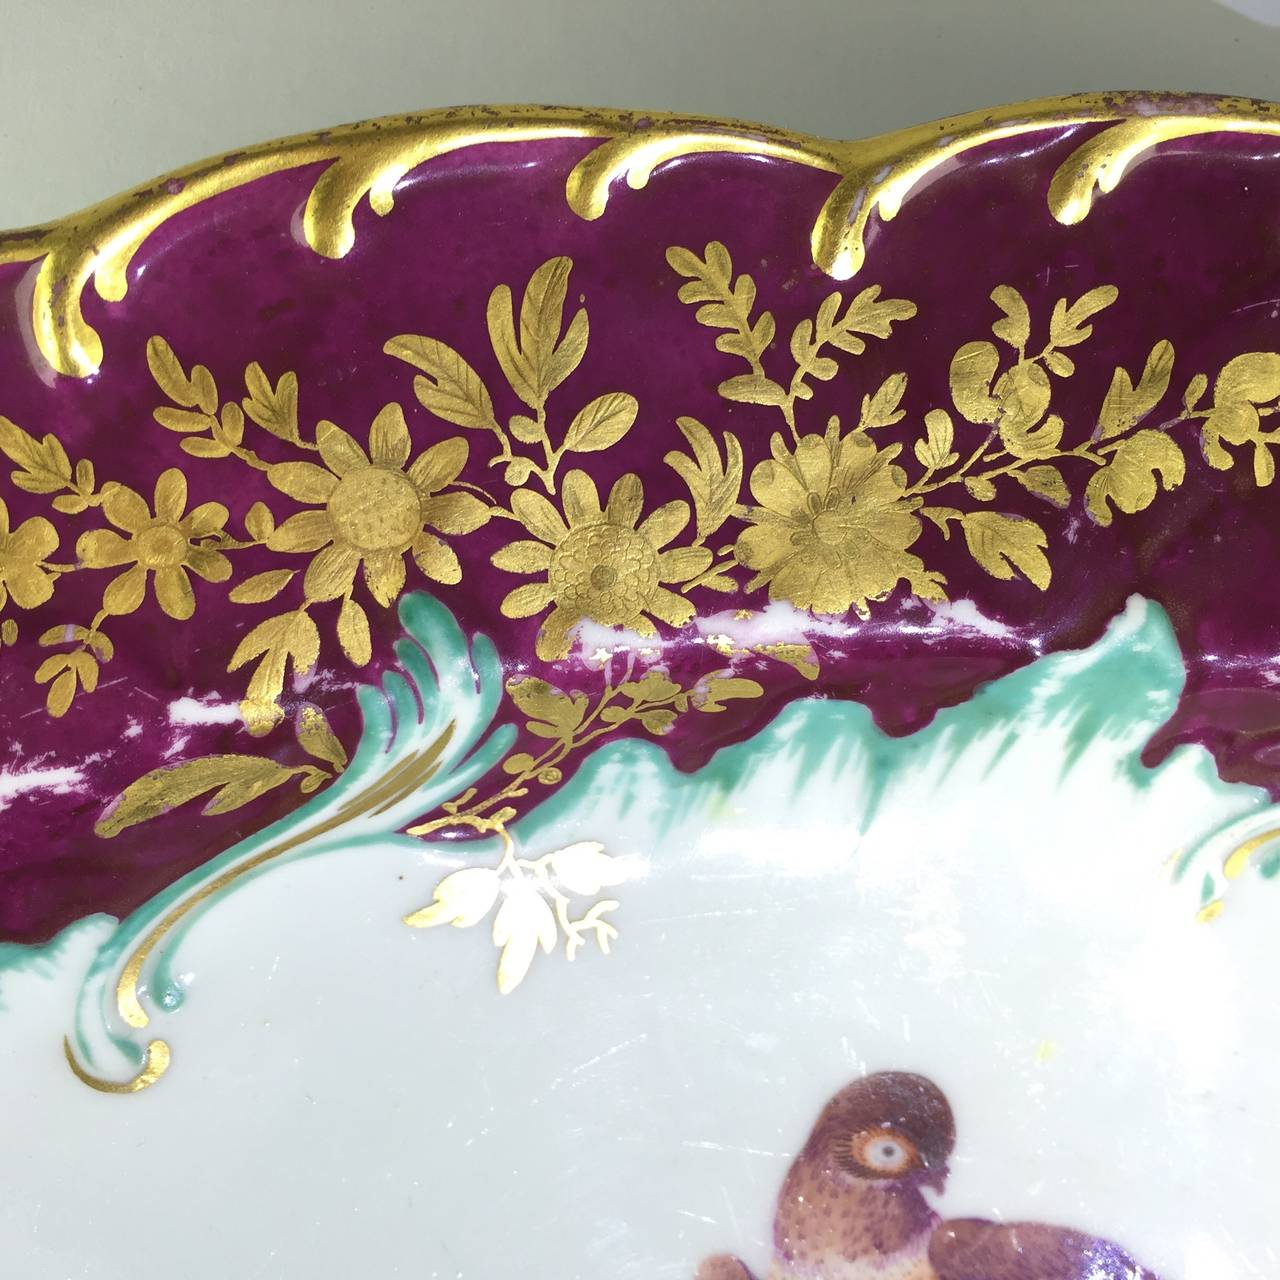 Chelsea Gold Anchor oval dish with pinecone moulded border and scroll moulded rim, richly gilded with tooled flower groups on a claret ground, the well feather moulded and picked out in turquoise, with a central colourful exotic bird perched on a